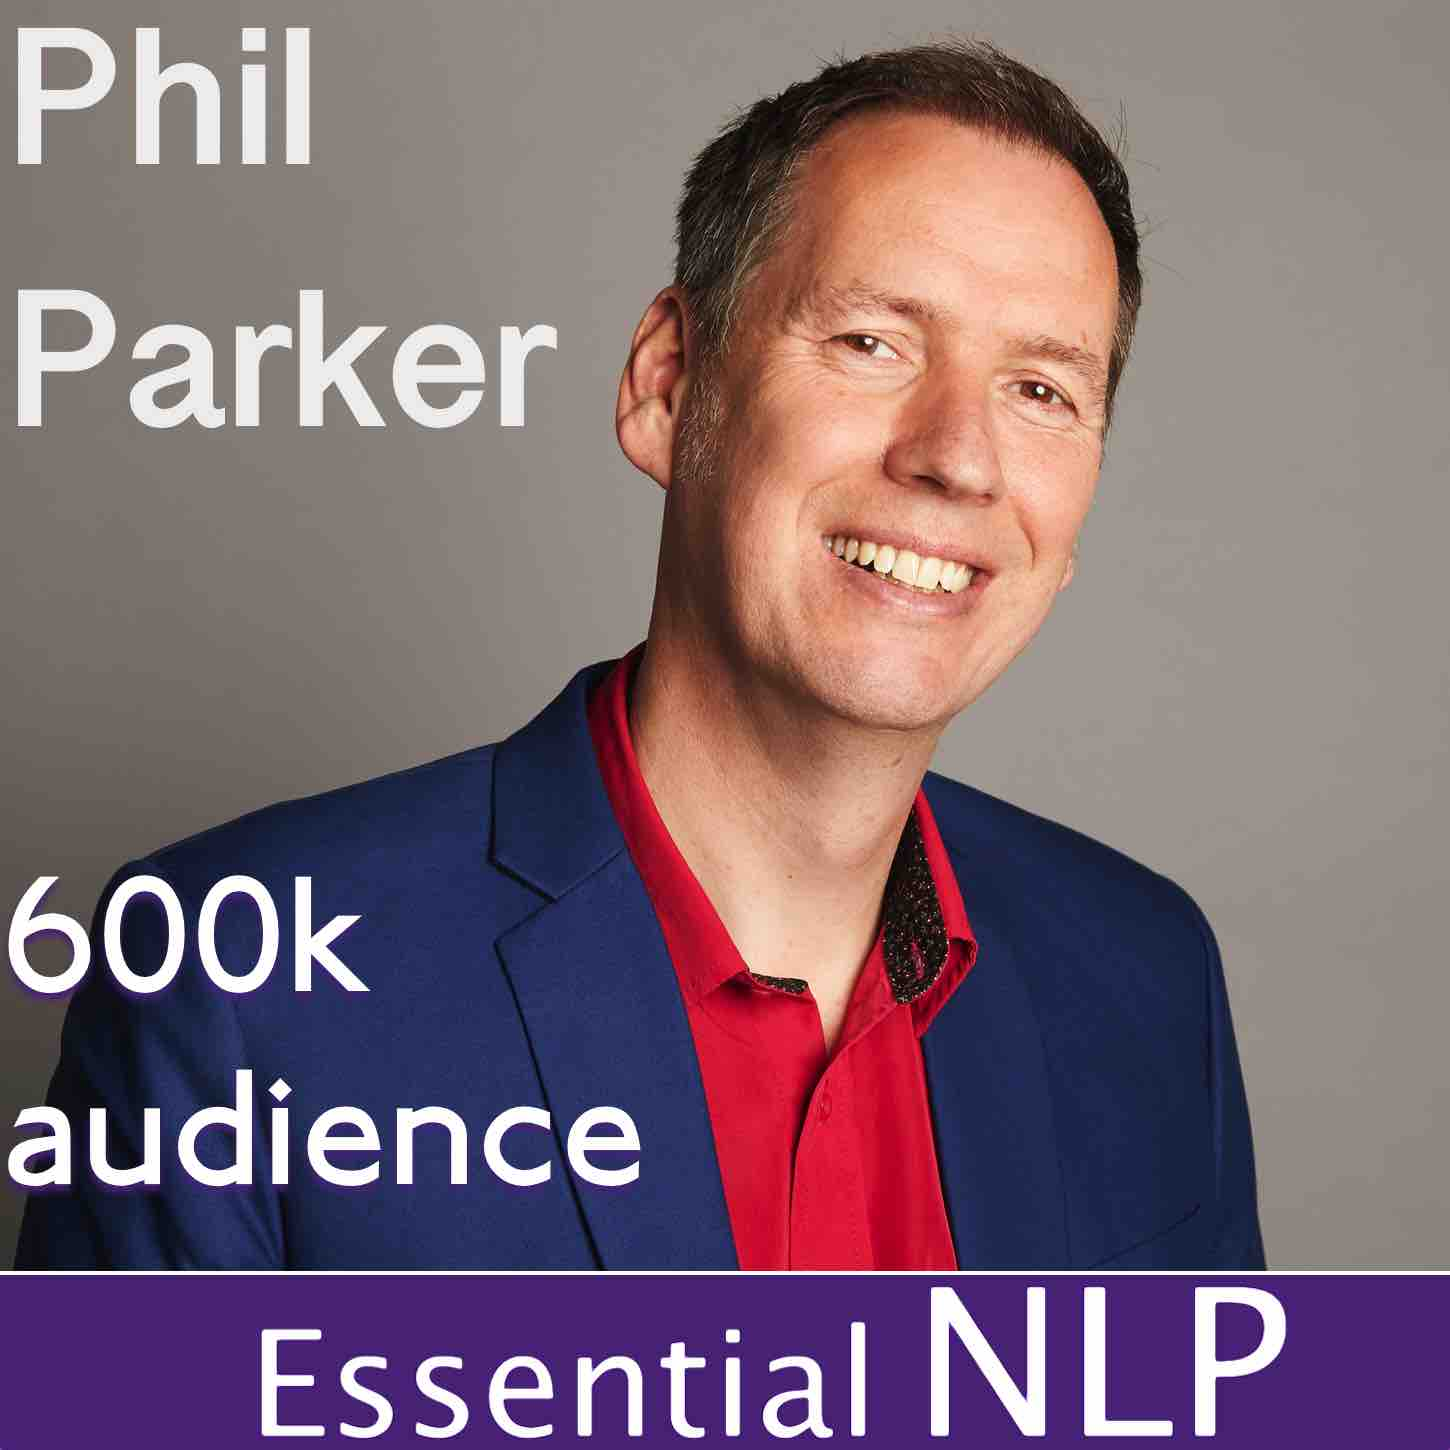 Essential NLP Podcast – Phil Parker